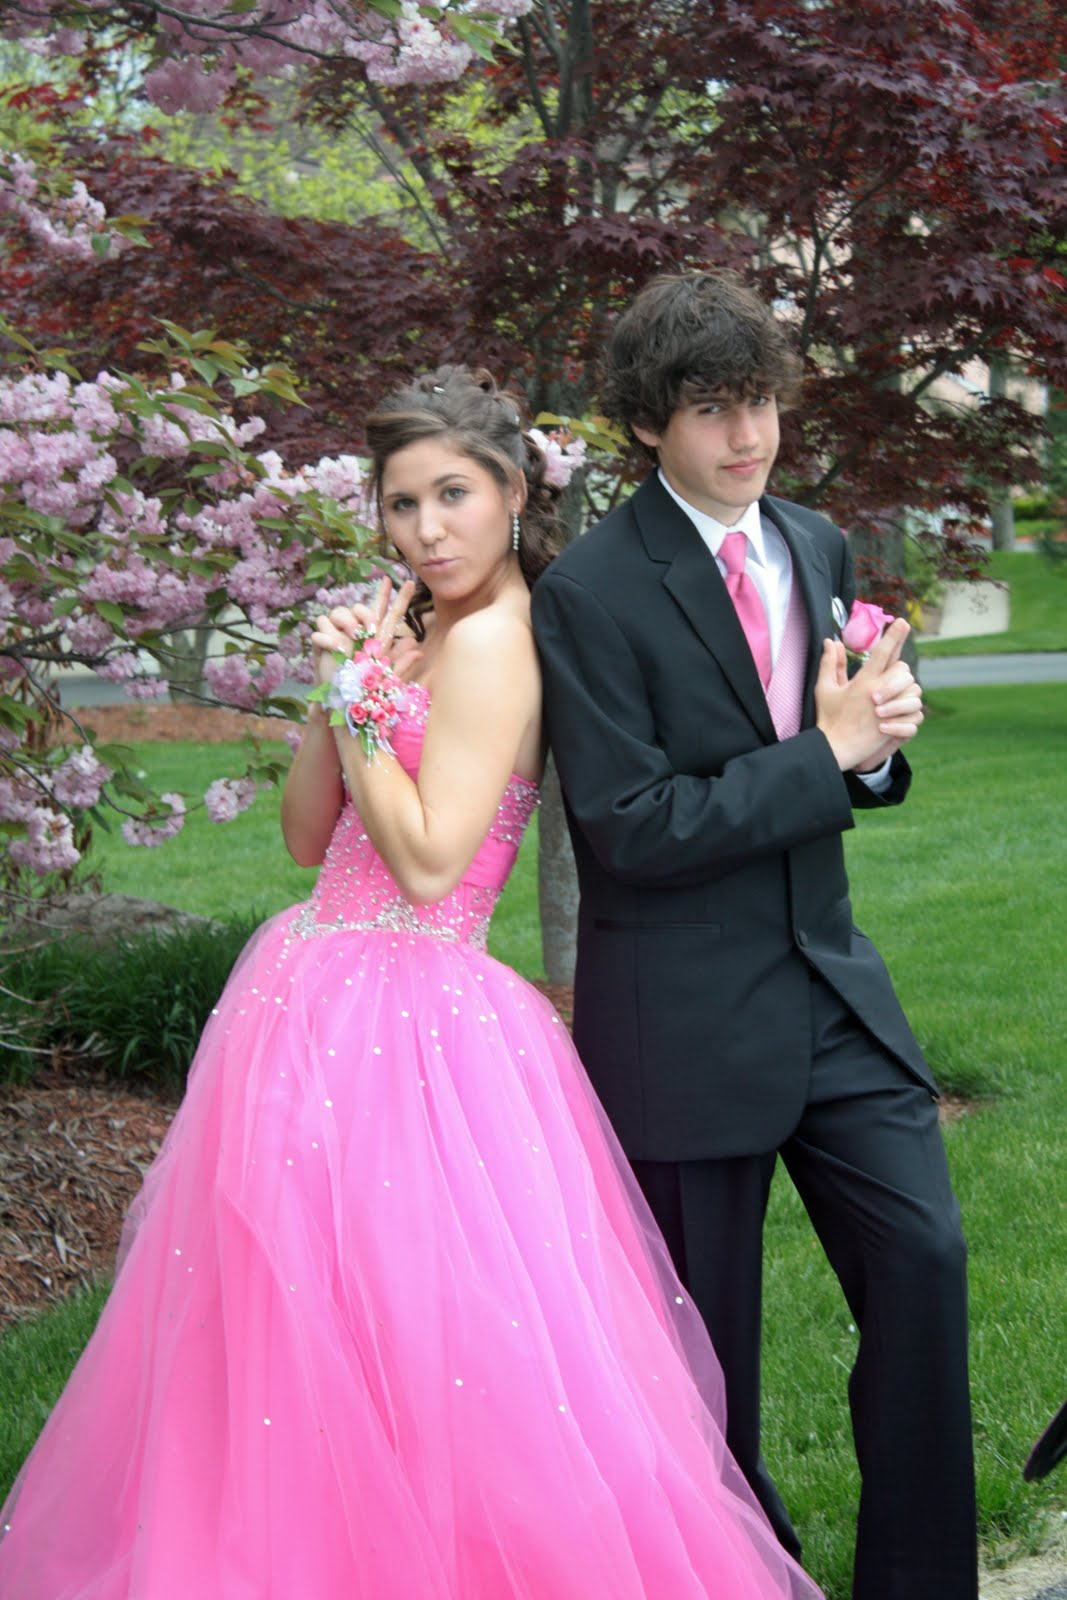 Leigh and Abram's Clan: Junior prom